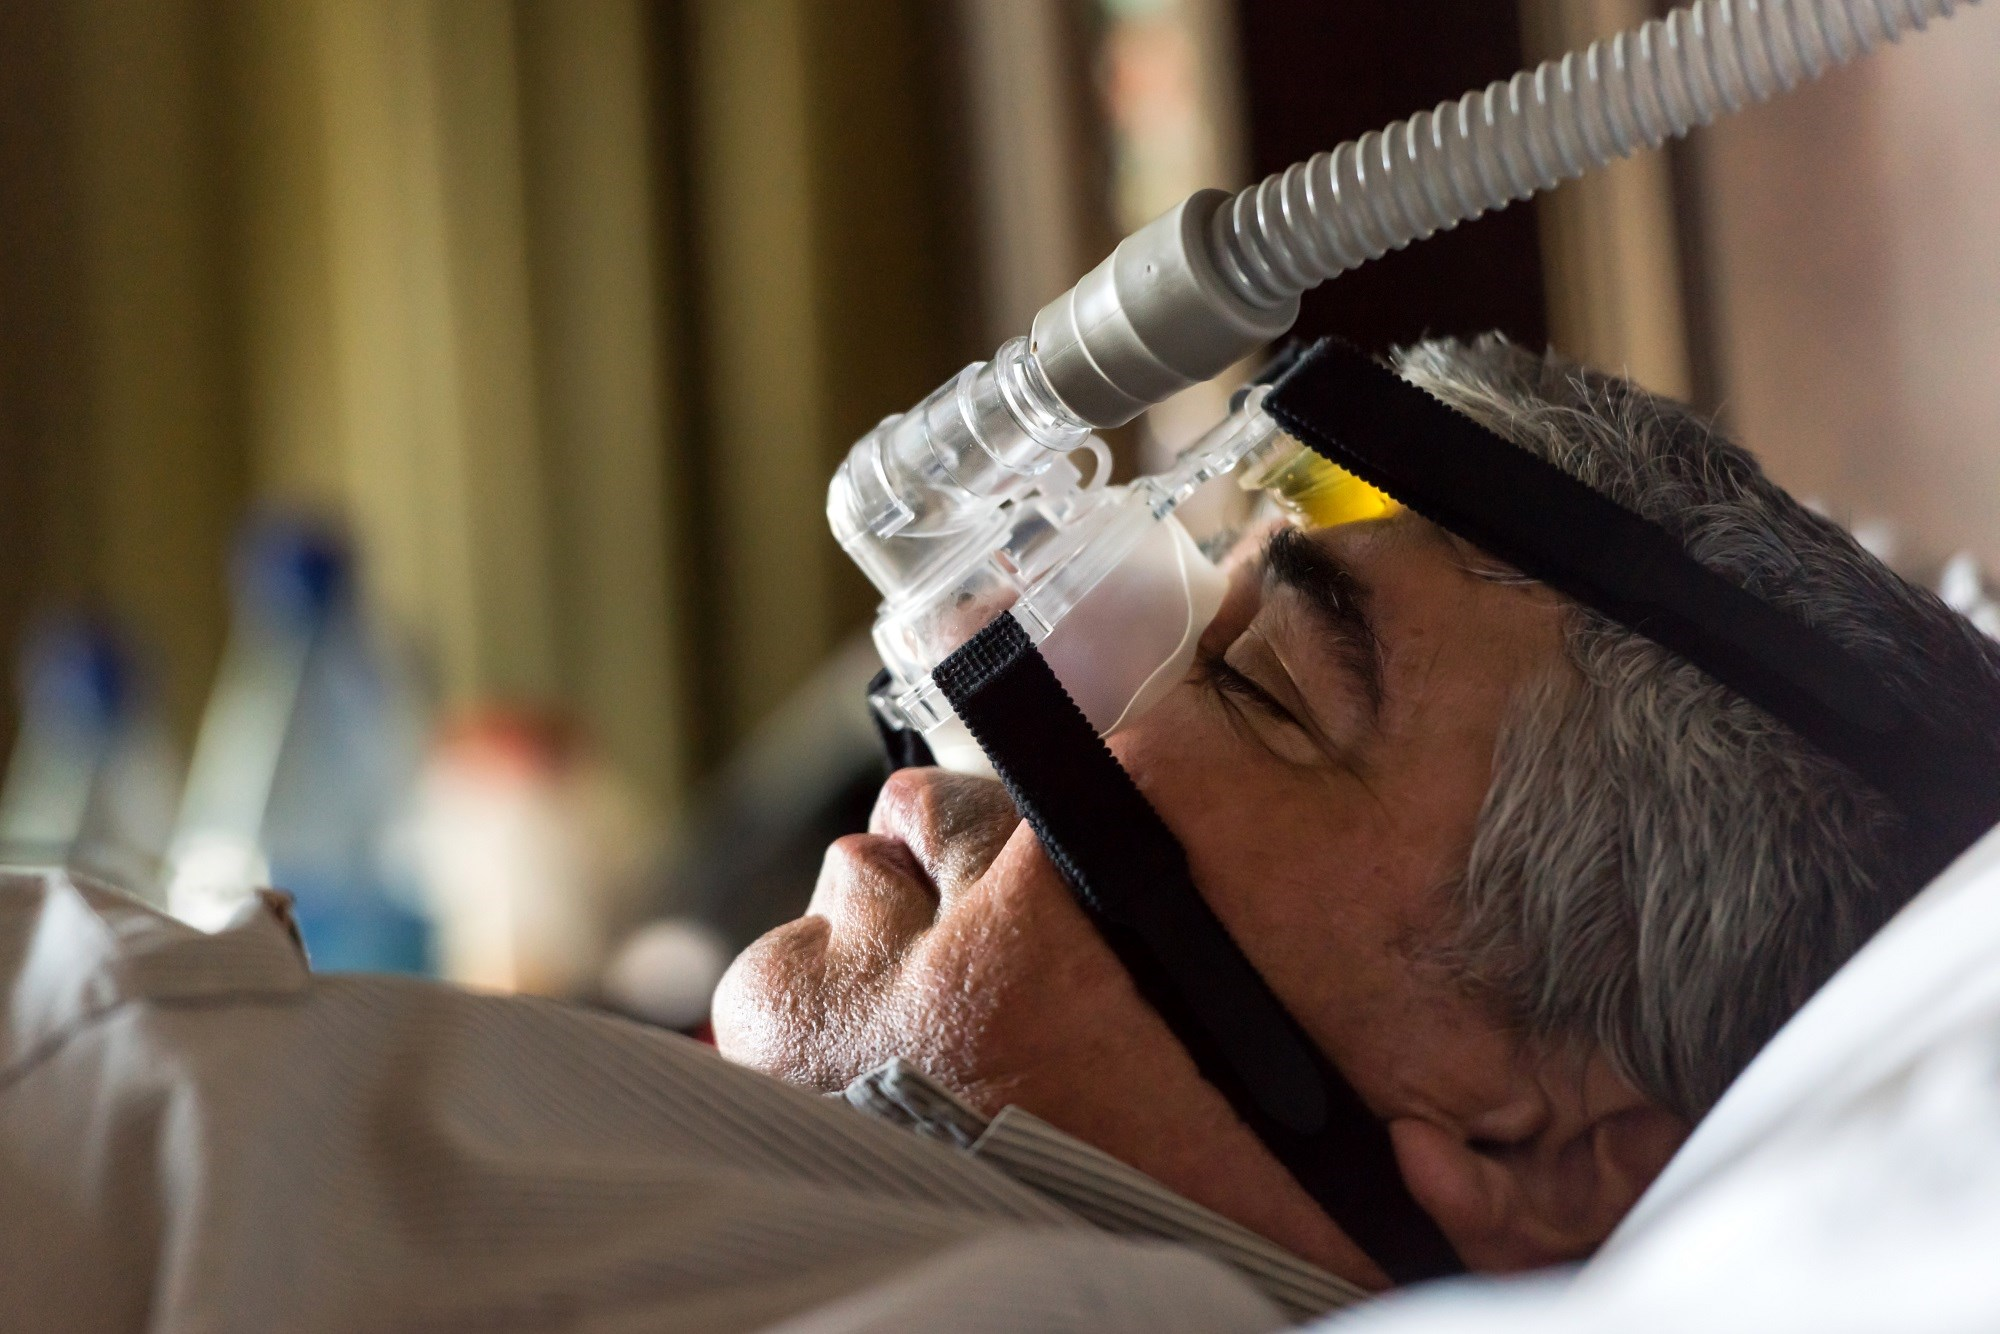 Obstructive sleep apnea is associated with changes to the structure of the brain that are seen in the early stages of dementia.